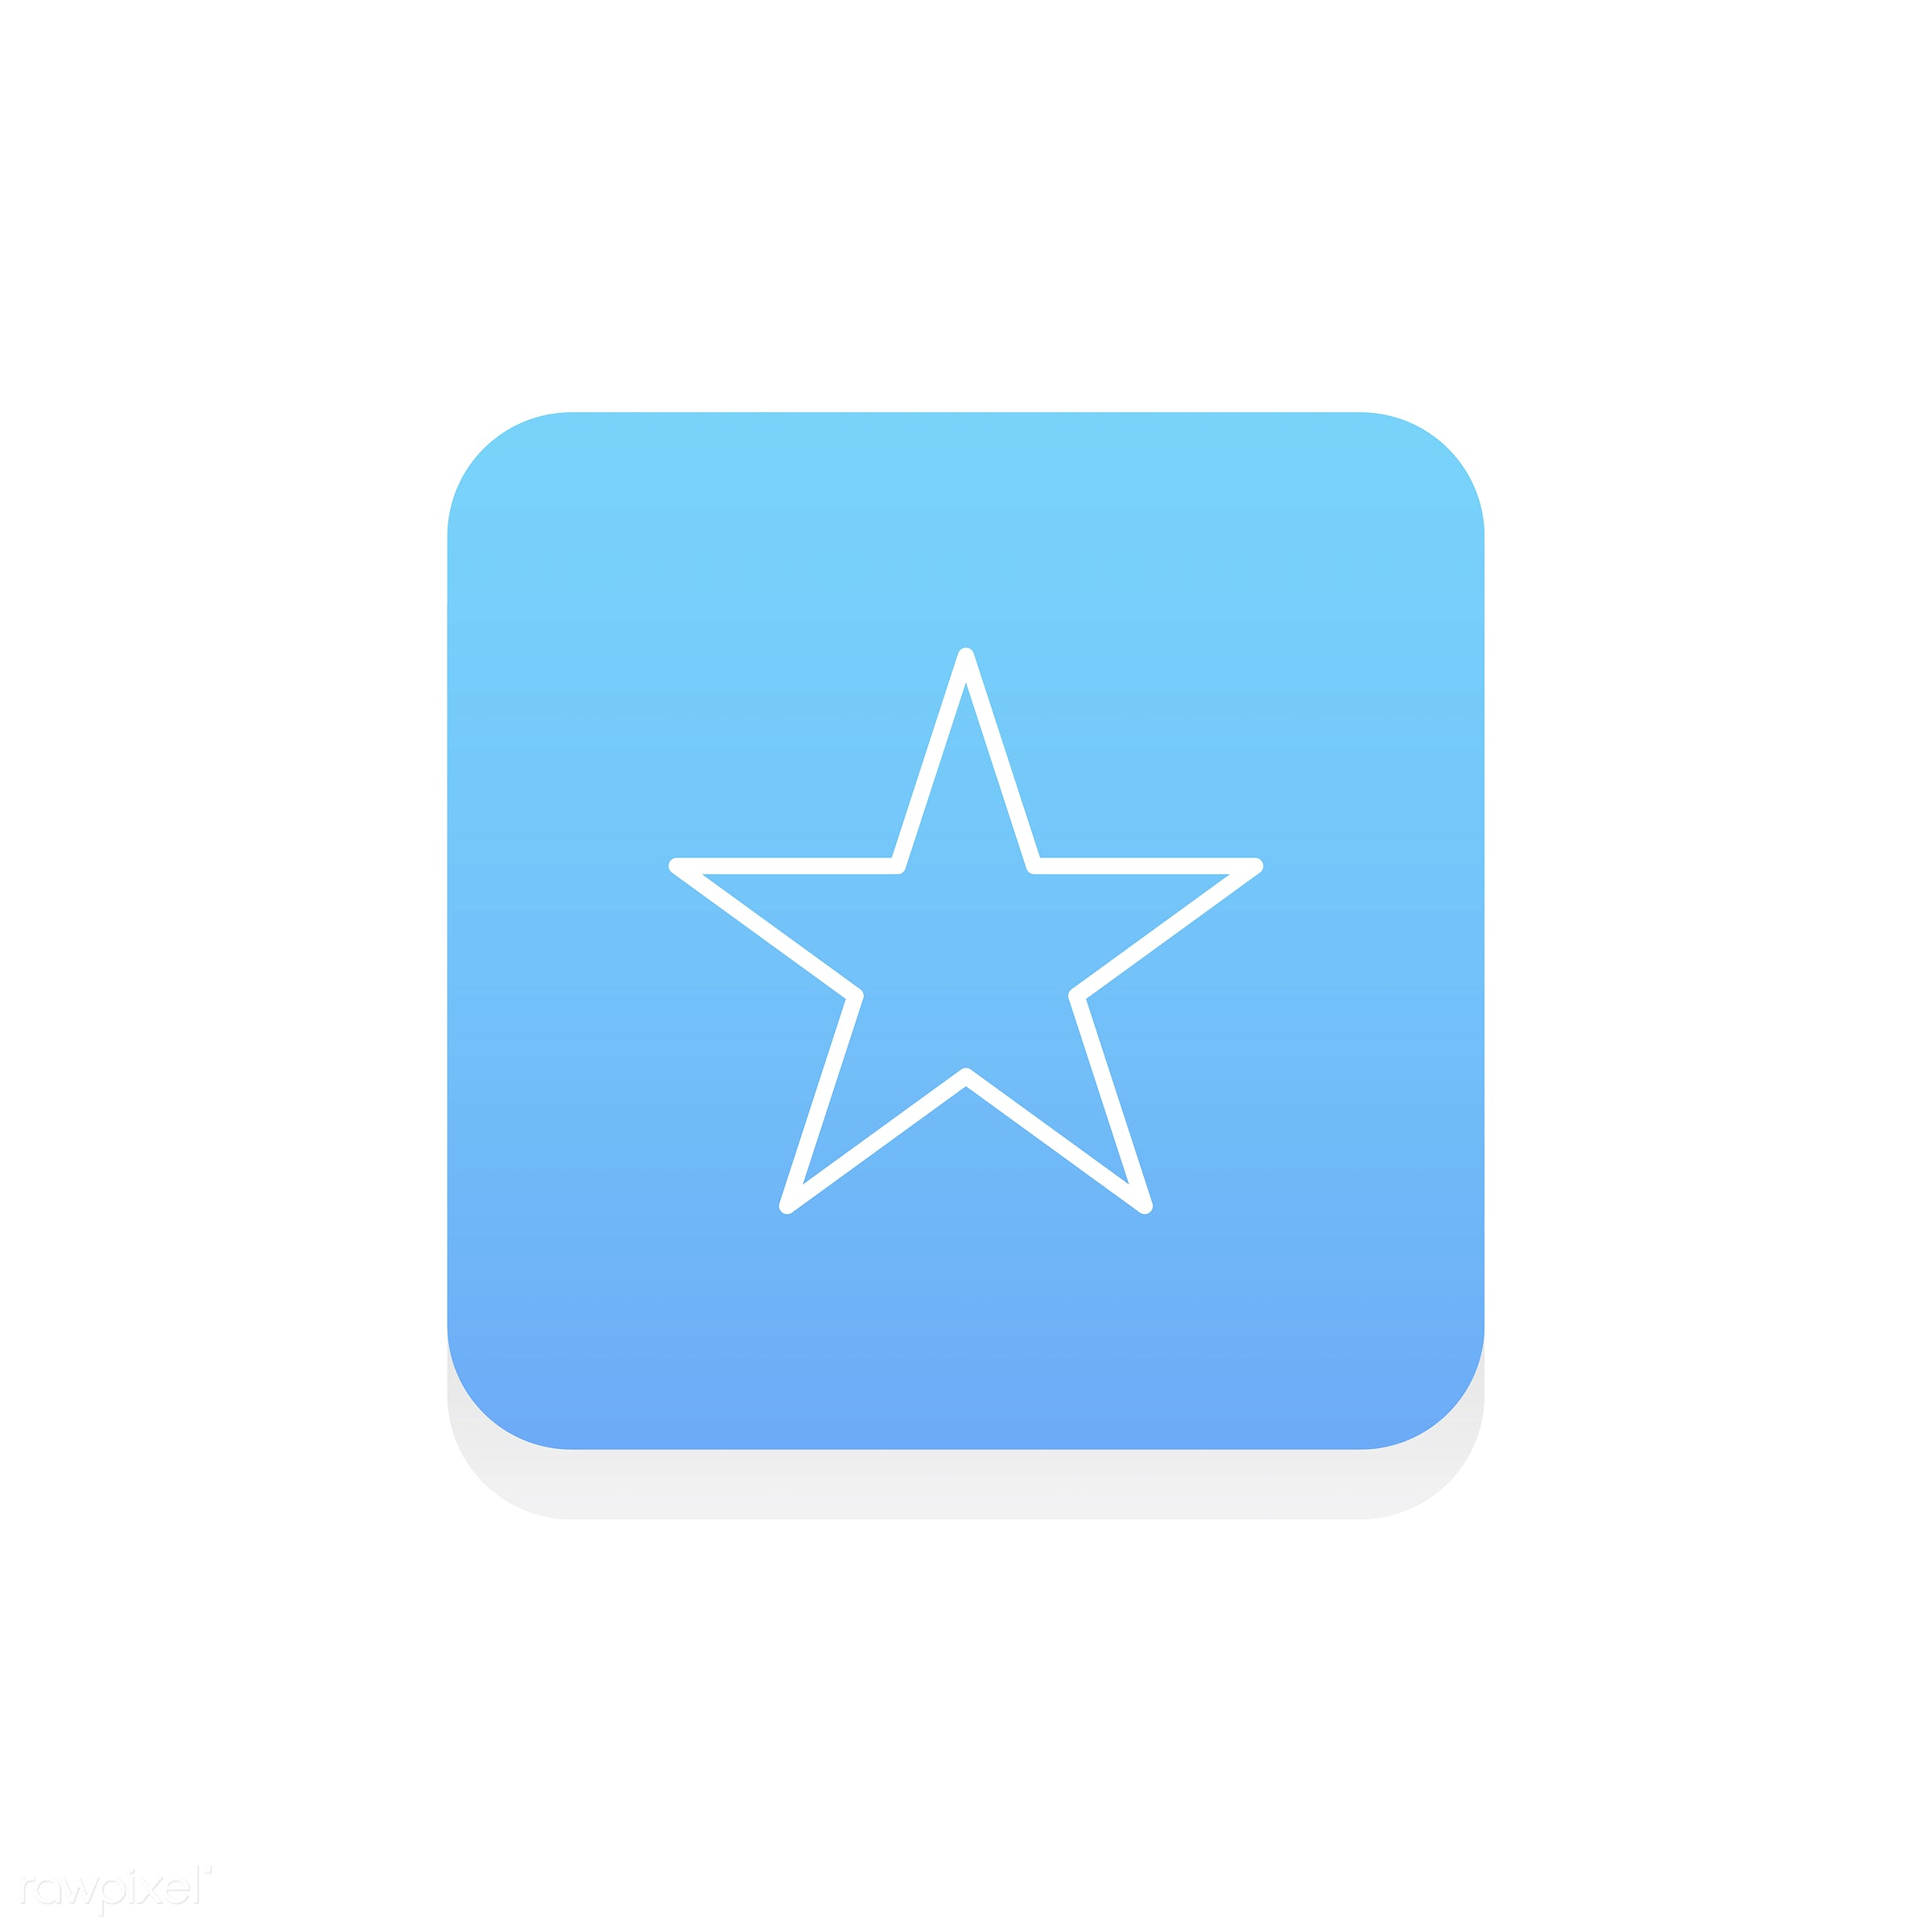 Vector of star icon - star, design, flat, graphic, icon, illustration, isolated, layout, style, symbol, vector, web, website...